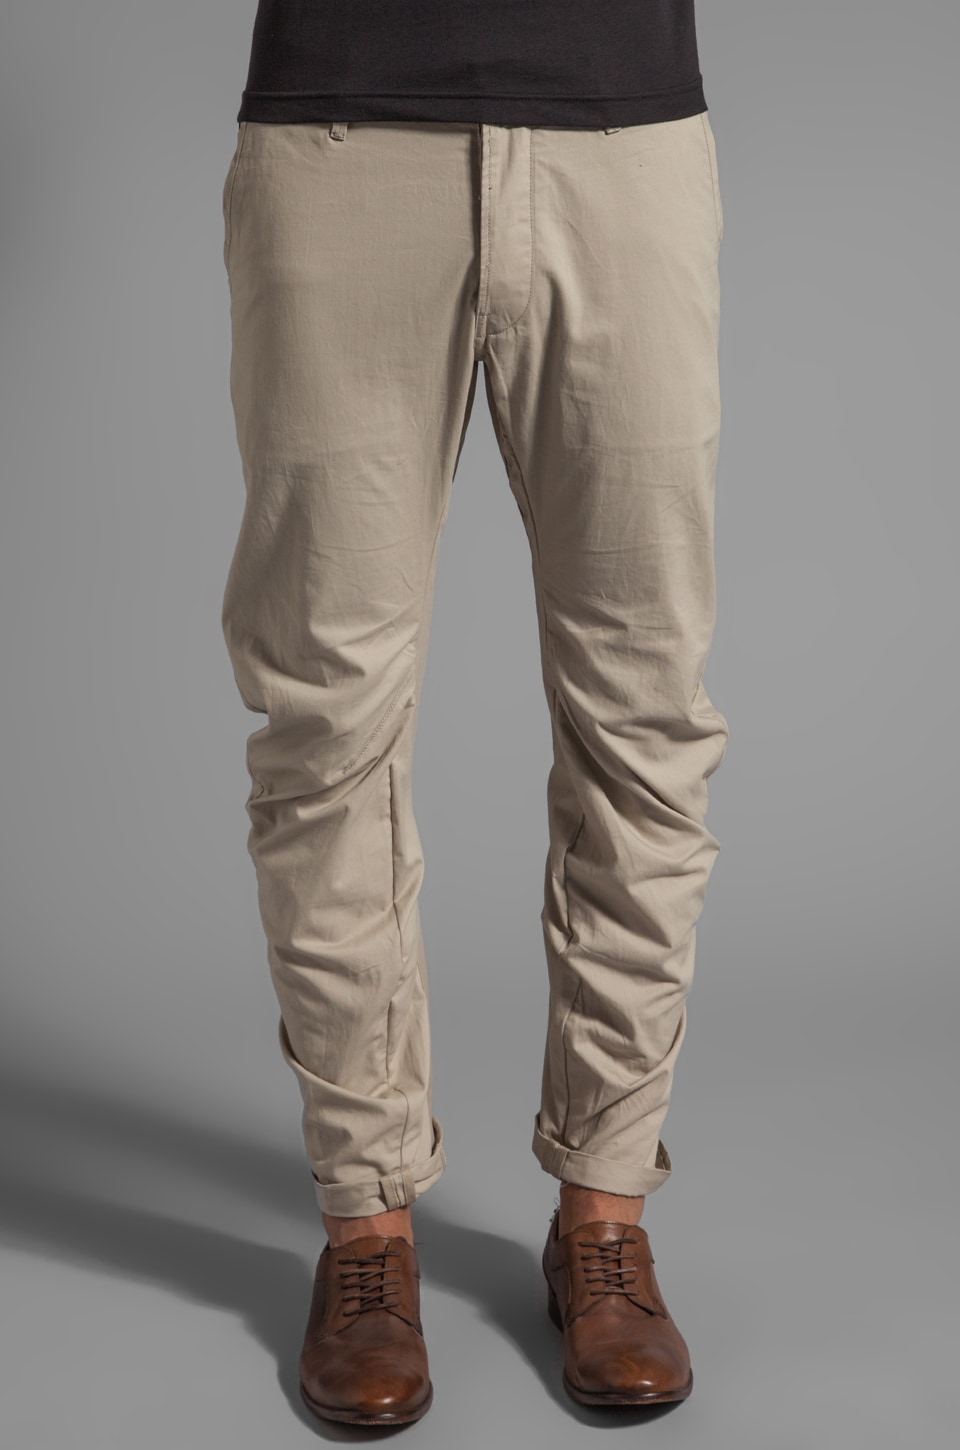 G-Star Correct Lens 3D Loose Tapered Pant in Khaki